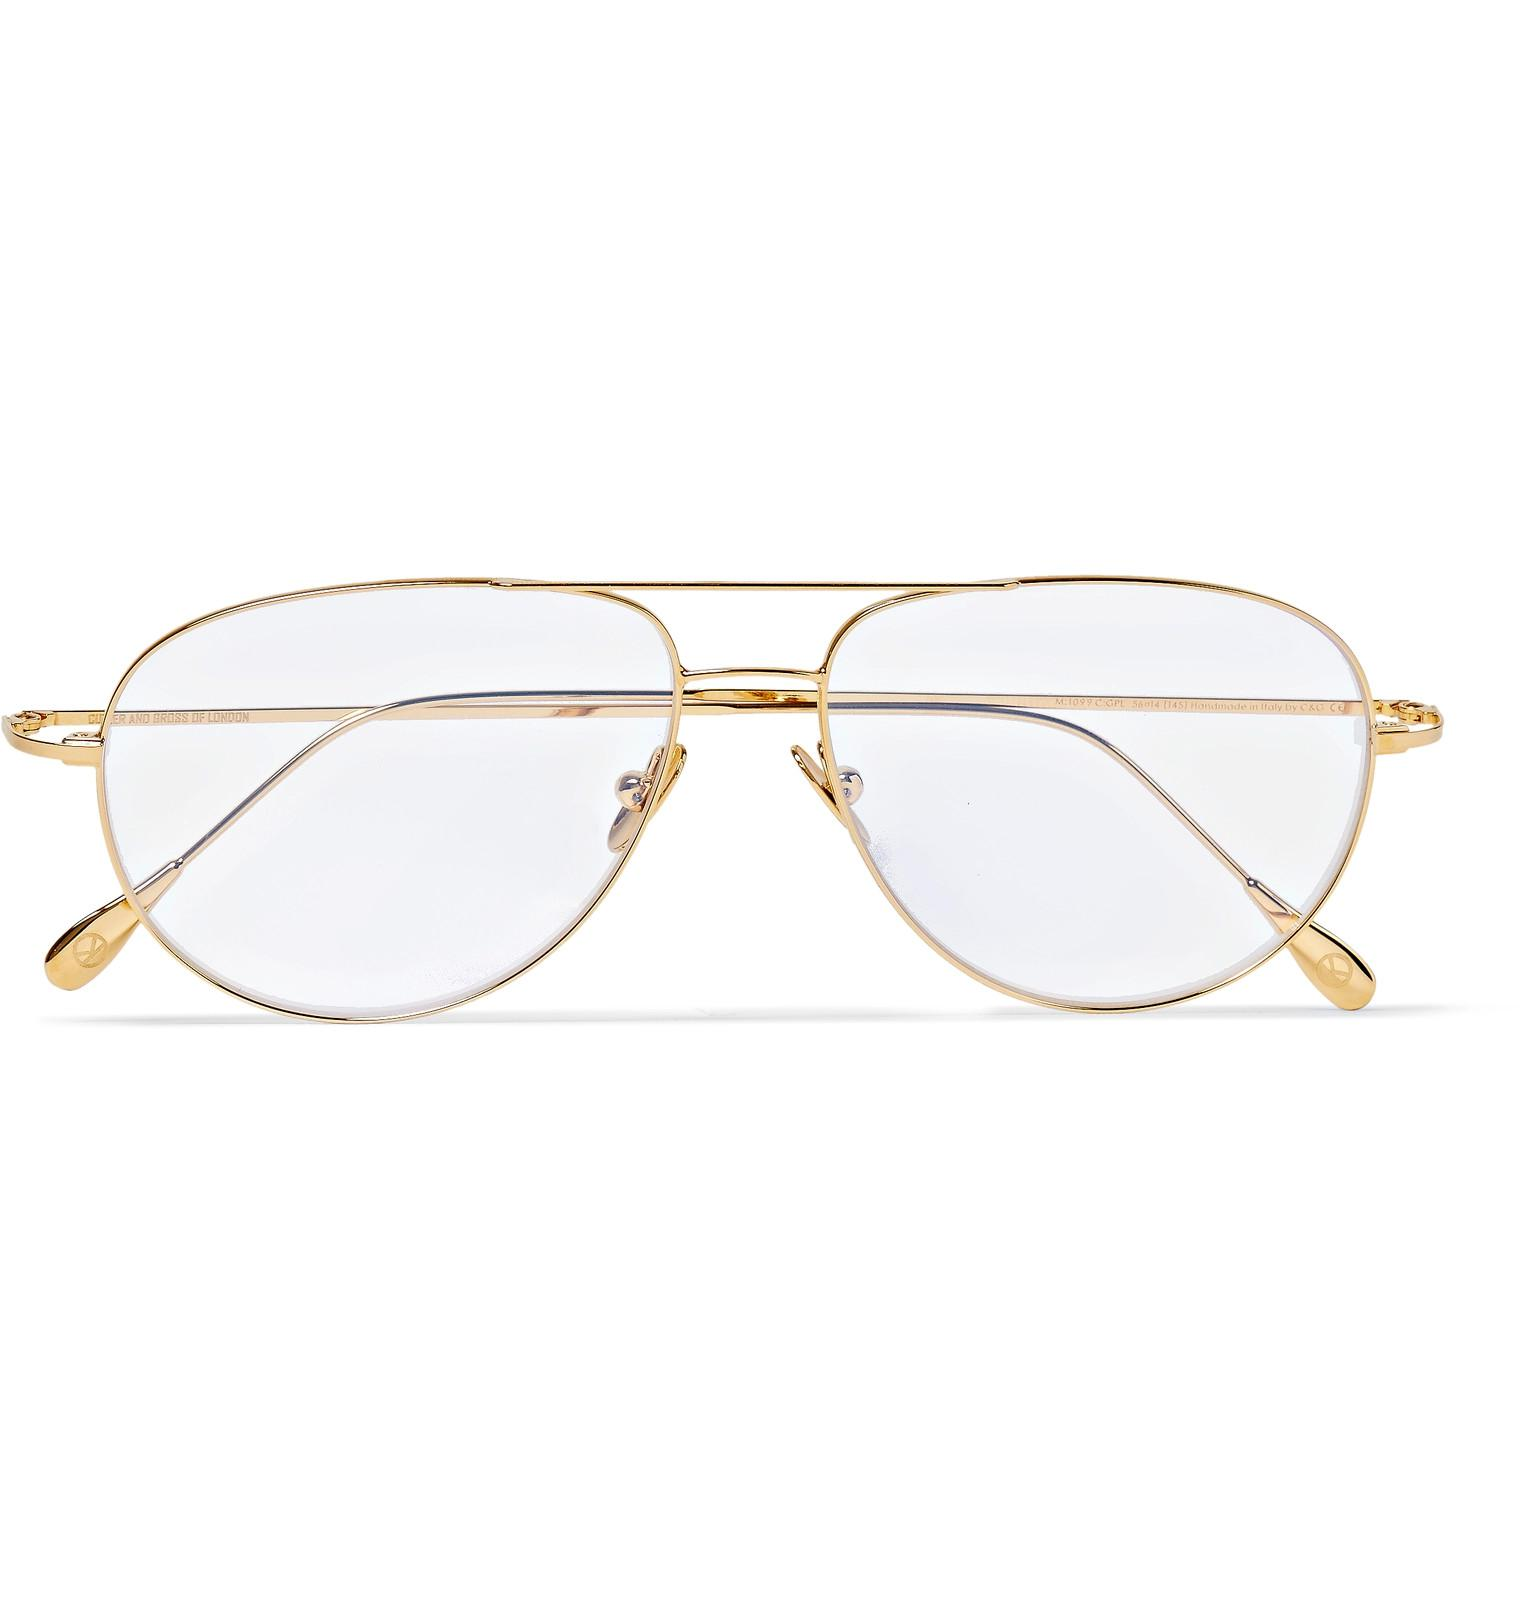 08afe8e822 Lyst - Kingsman + Cutler And Gross Statesman Aviator-style Gold-tone ...